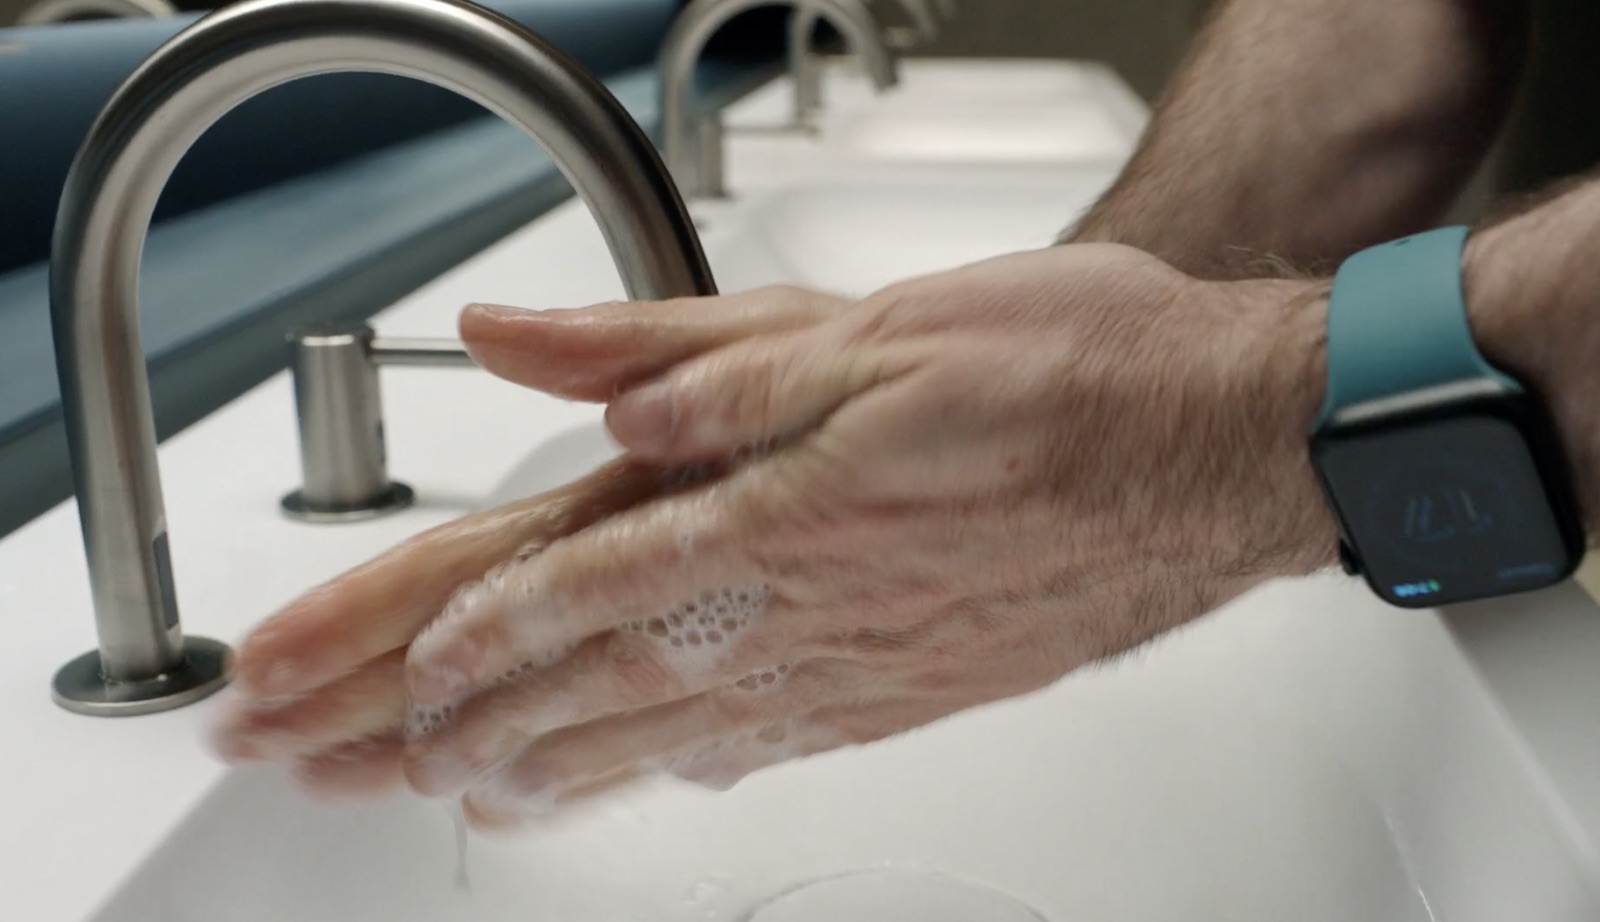 watchos7 hand washing